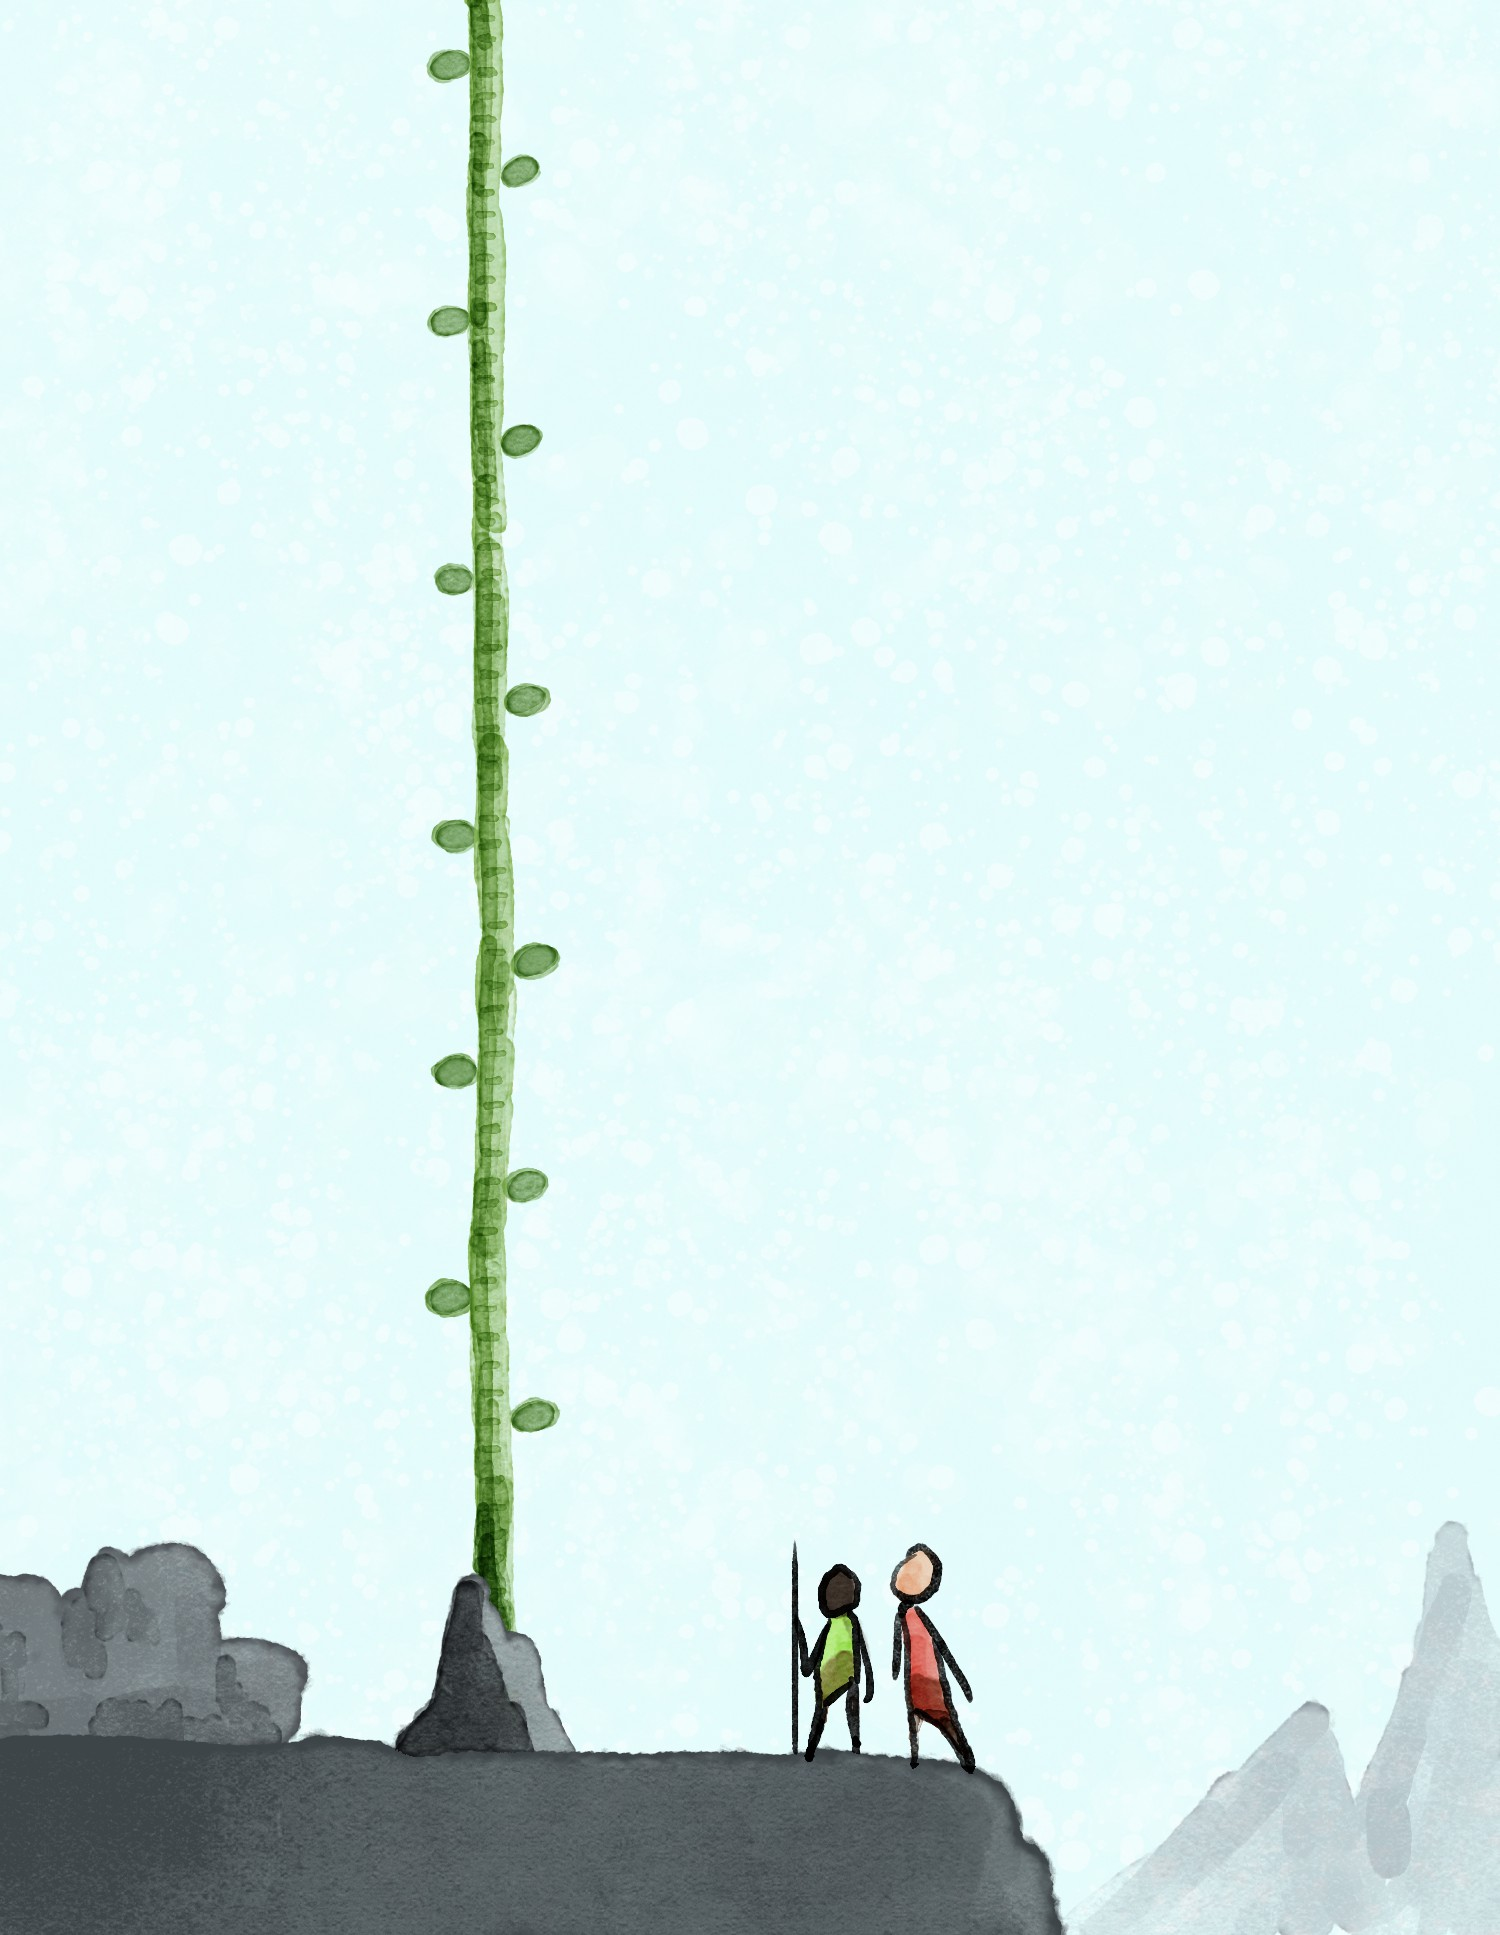 the-abandoned-beanstalk.jpg